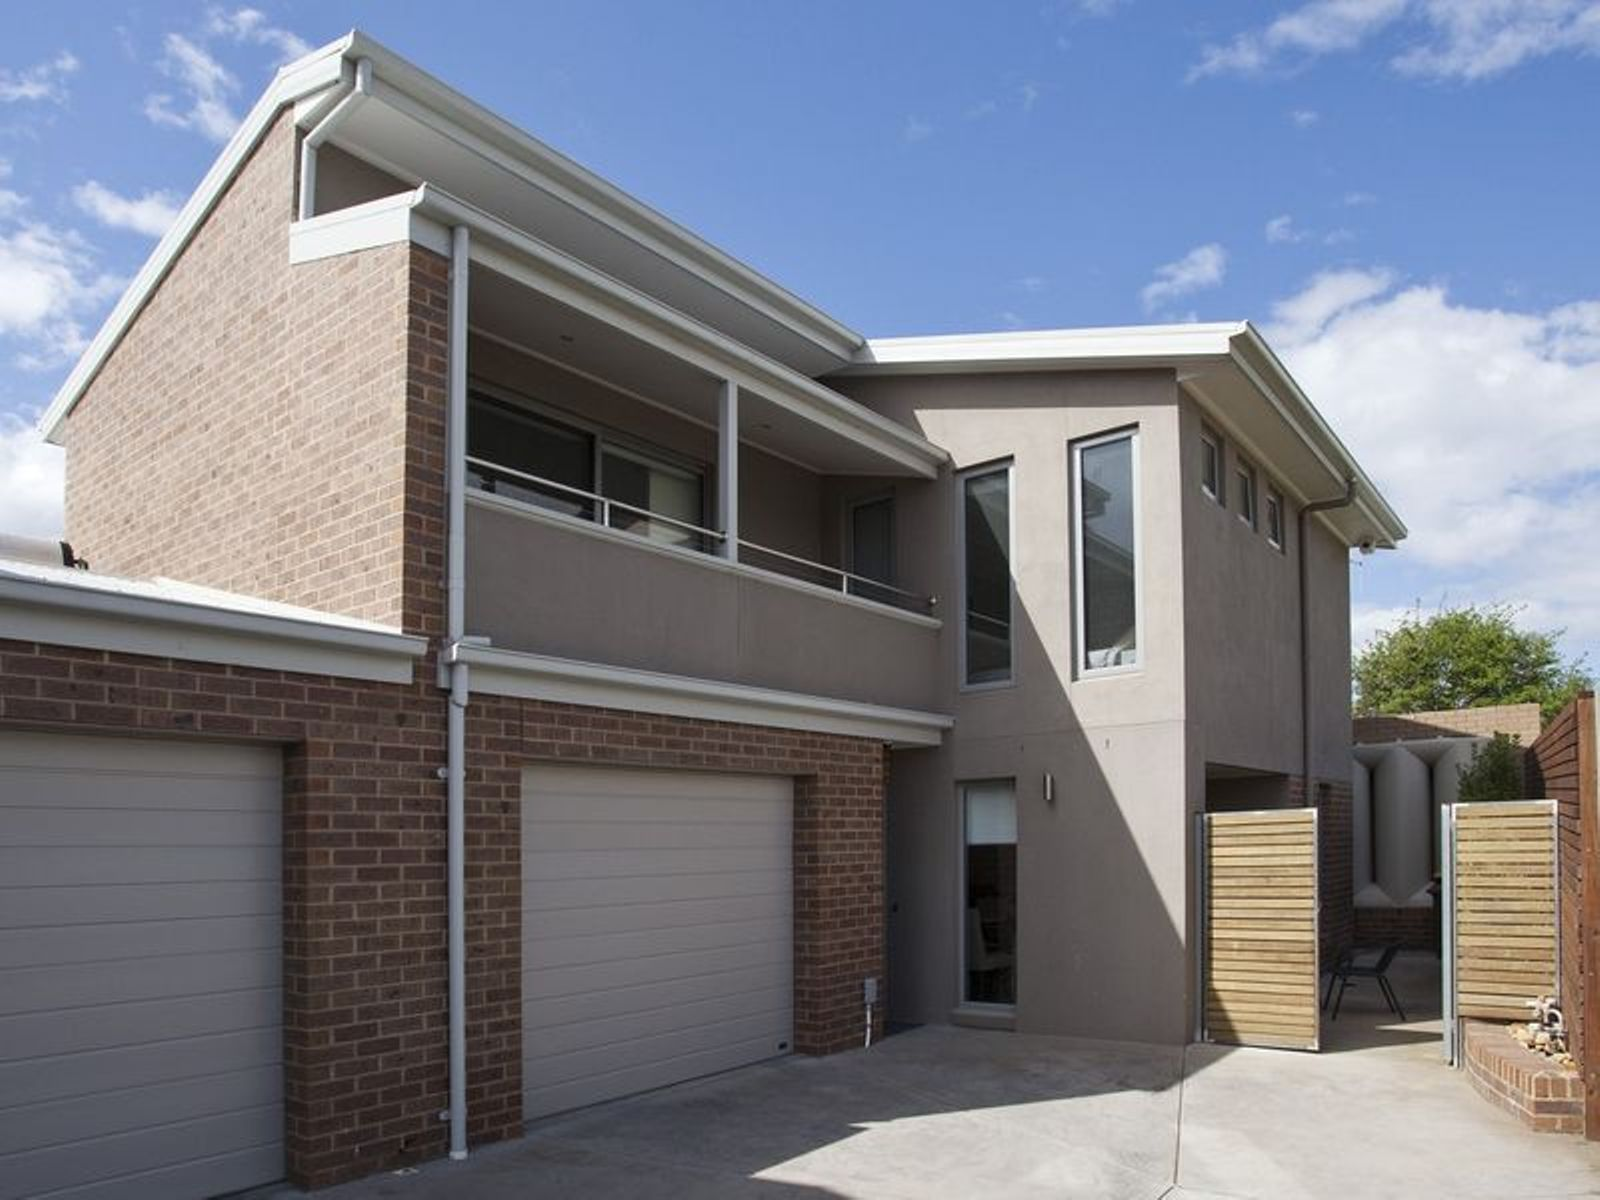 2/19 Creek Street, Bendigo, VIC 3550